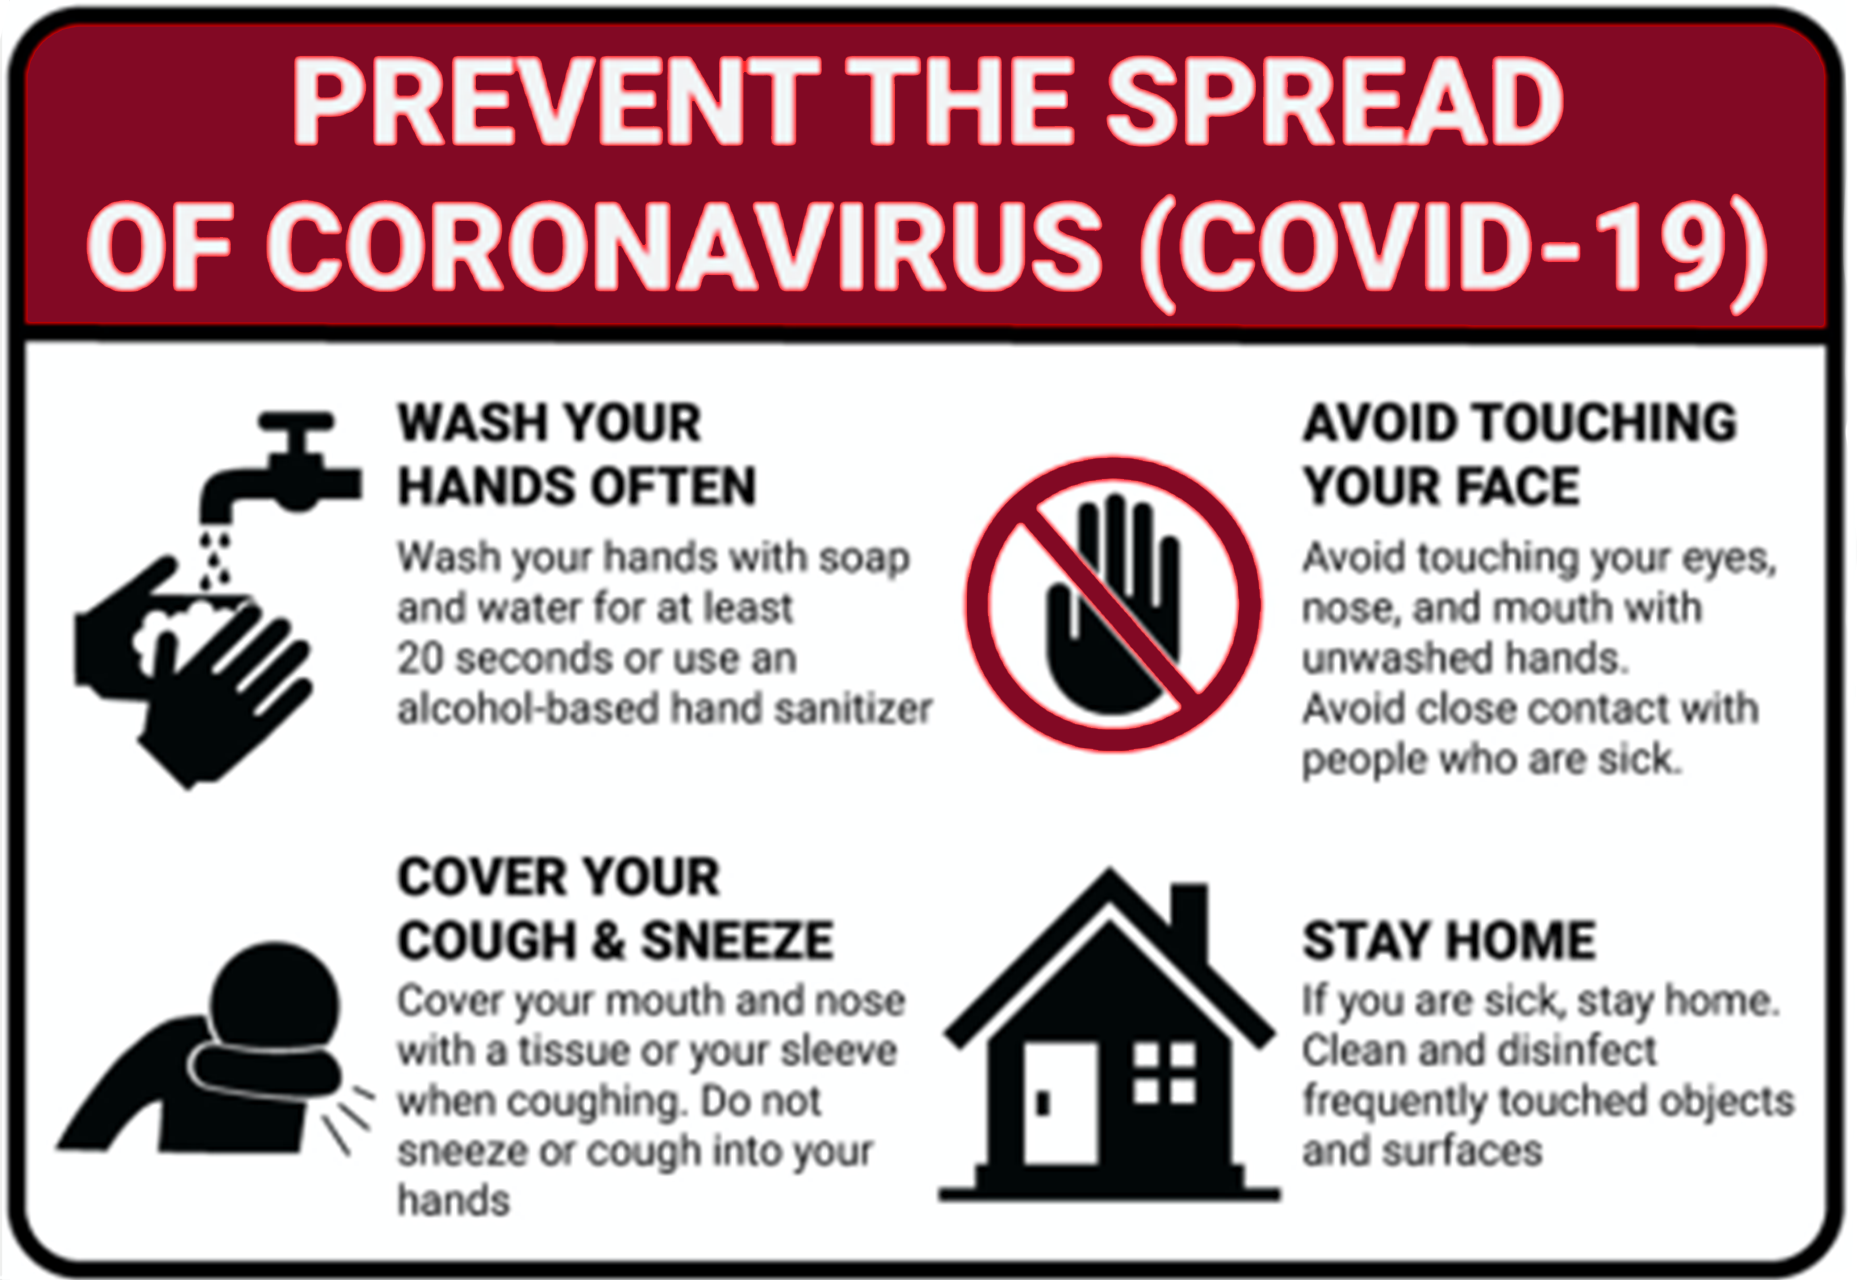 A list of how to prevent the spread of covid 19: wash hands, cover when you cough, avoid touching your face and stay home